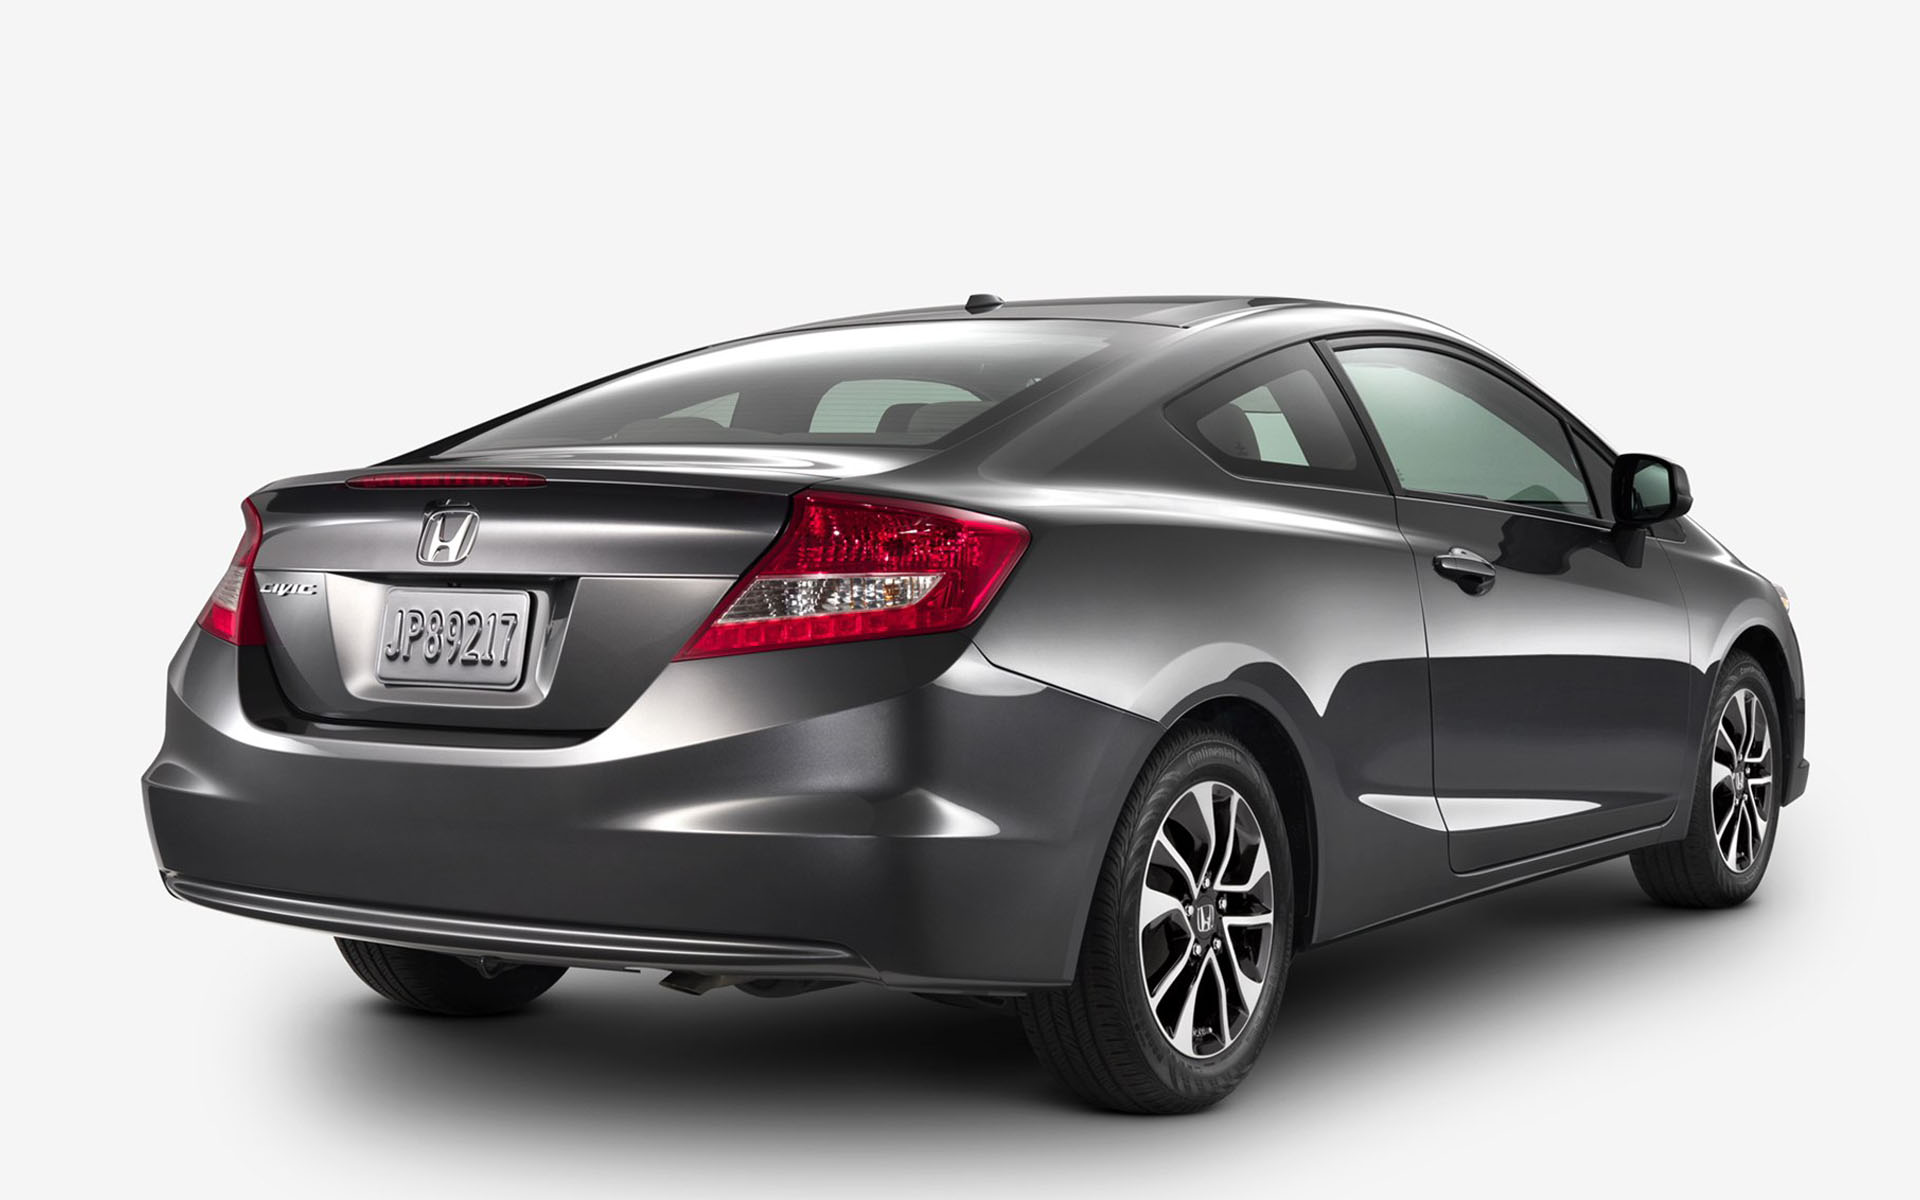 Honda Civic Coupe Wallpapers Free Download Image Of